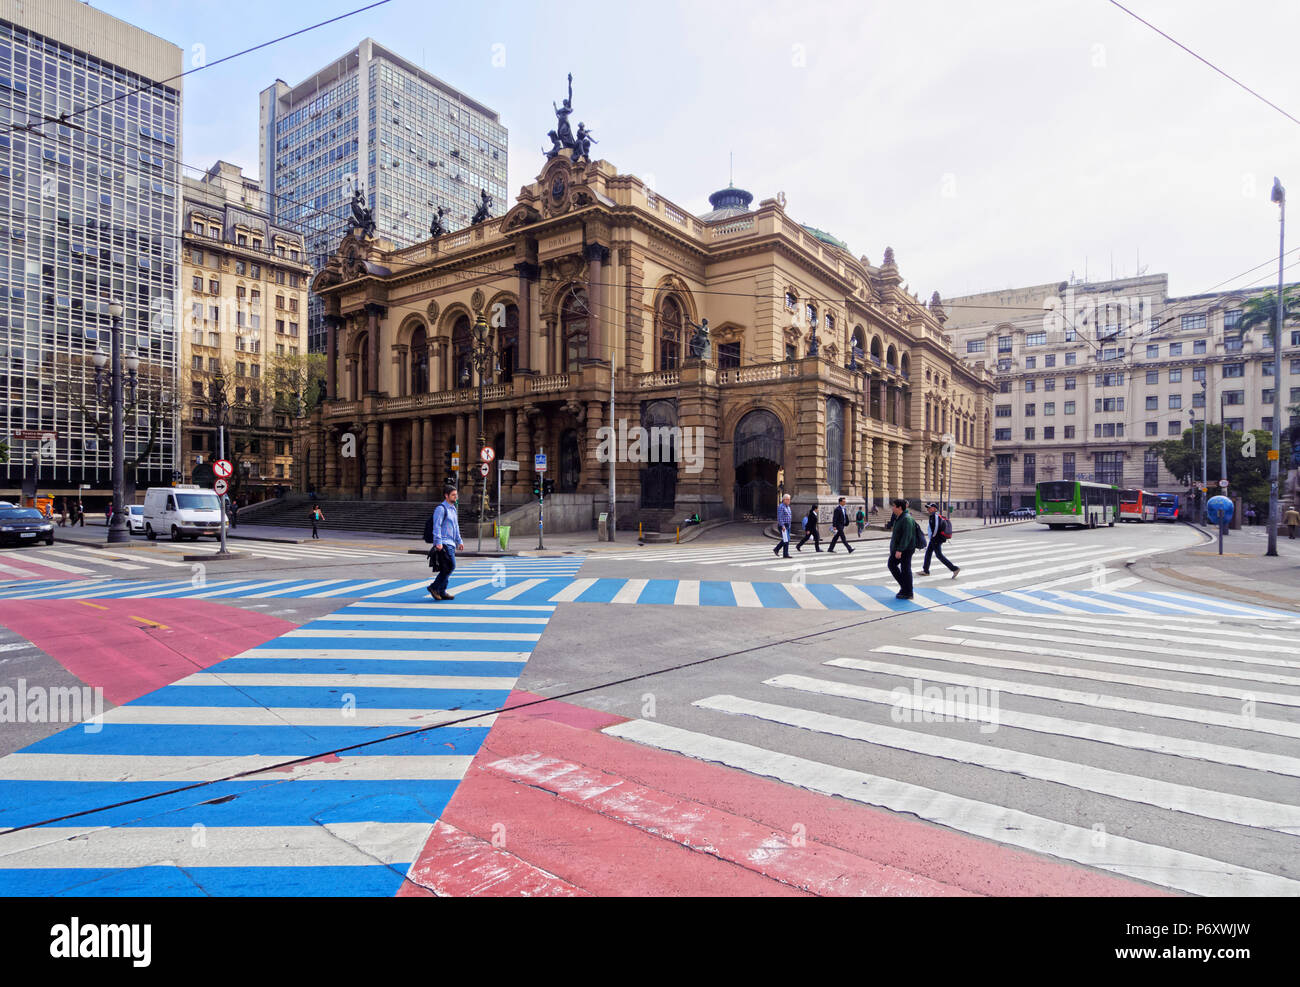 Brazil, State of Sao Paulo, City of Sao Paulo, View of the Municipal Theatre at the junction of Viaduto do Cha, Rua Xavier de Toledo and Praca Ramos de Azevedo. - Stock Image